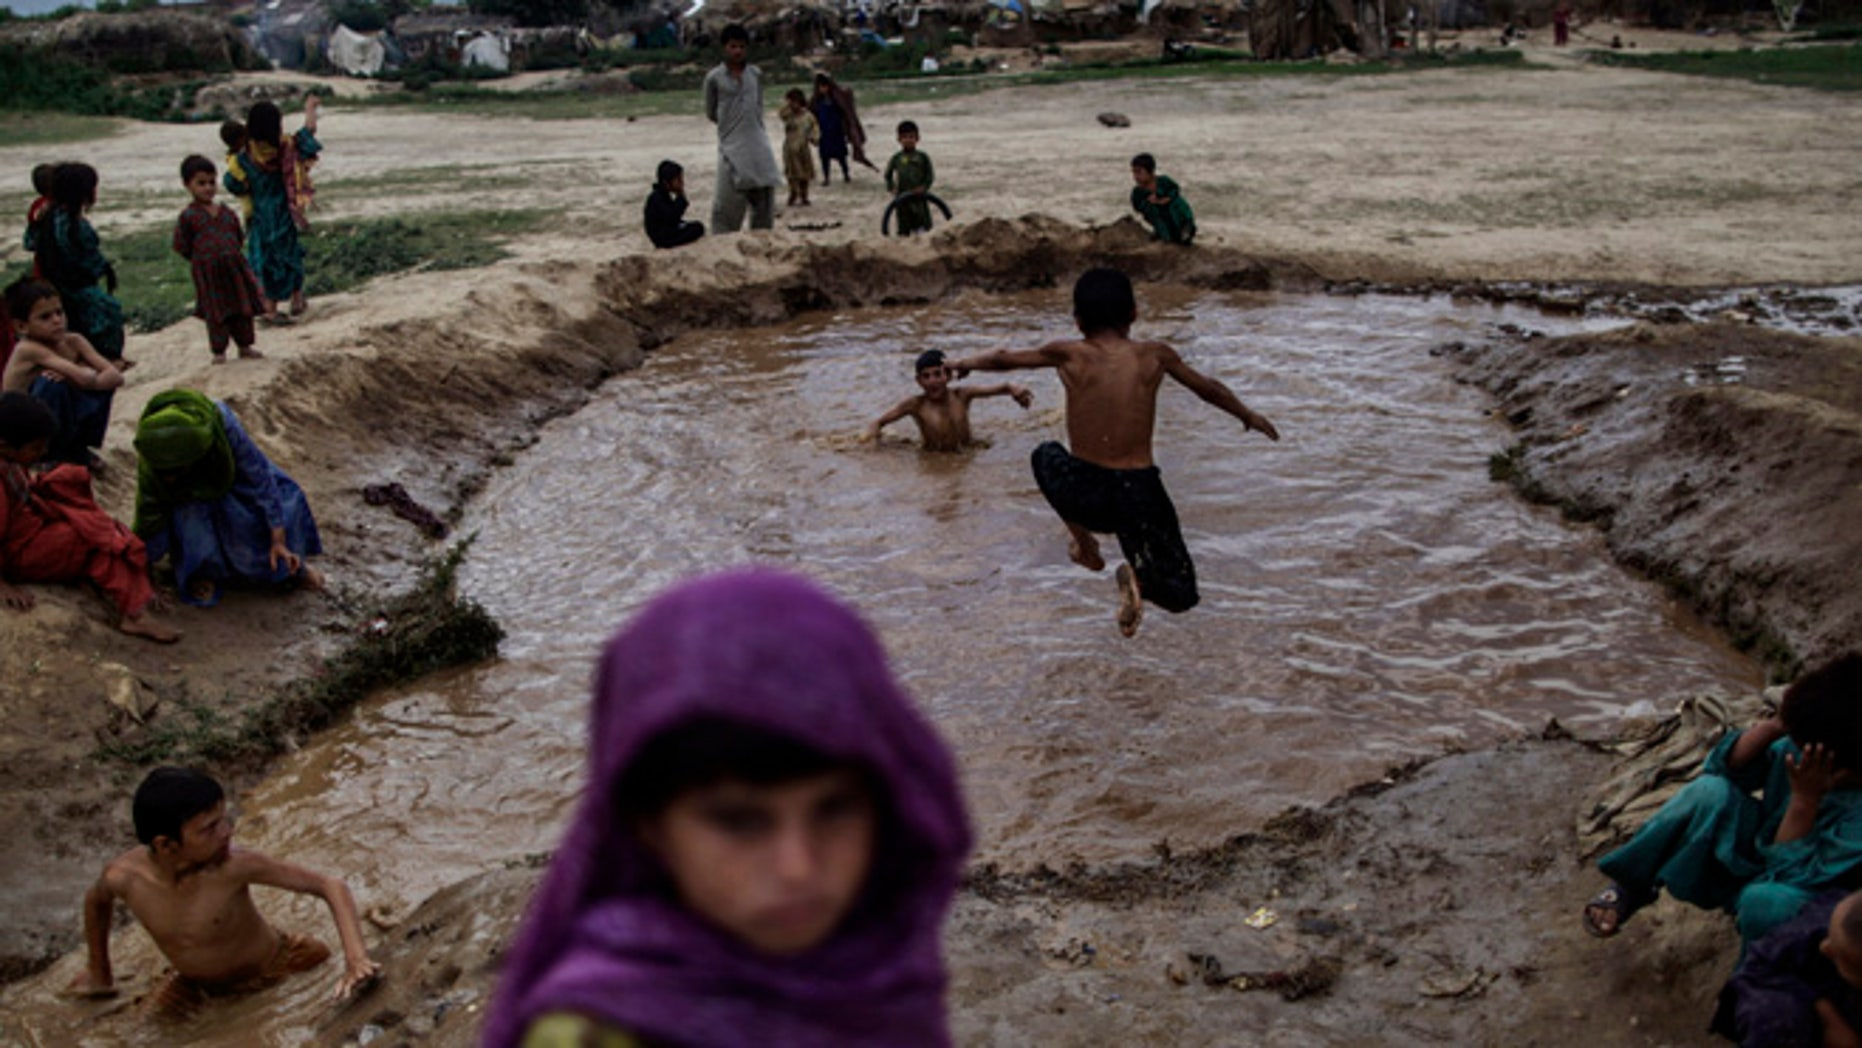 June 17, 2013: Afghan refugee children, swim in muddy water created from a broken water pipe, on the outskirts of Islamabad, Pakistan. Pakistan hosts over 1.6 million registered Afghans, the largest and most protracted refugee population in the world, according to the U.N. refugee agency.